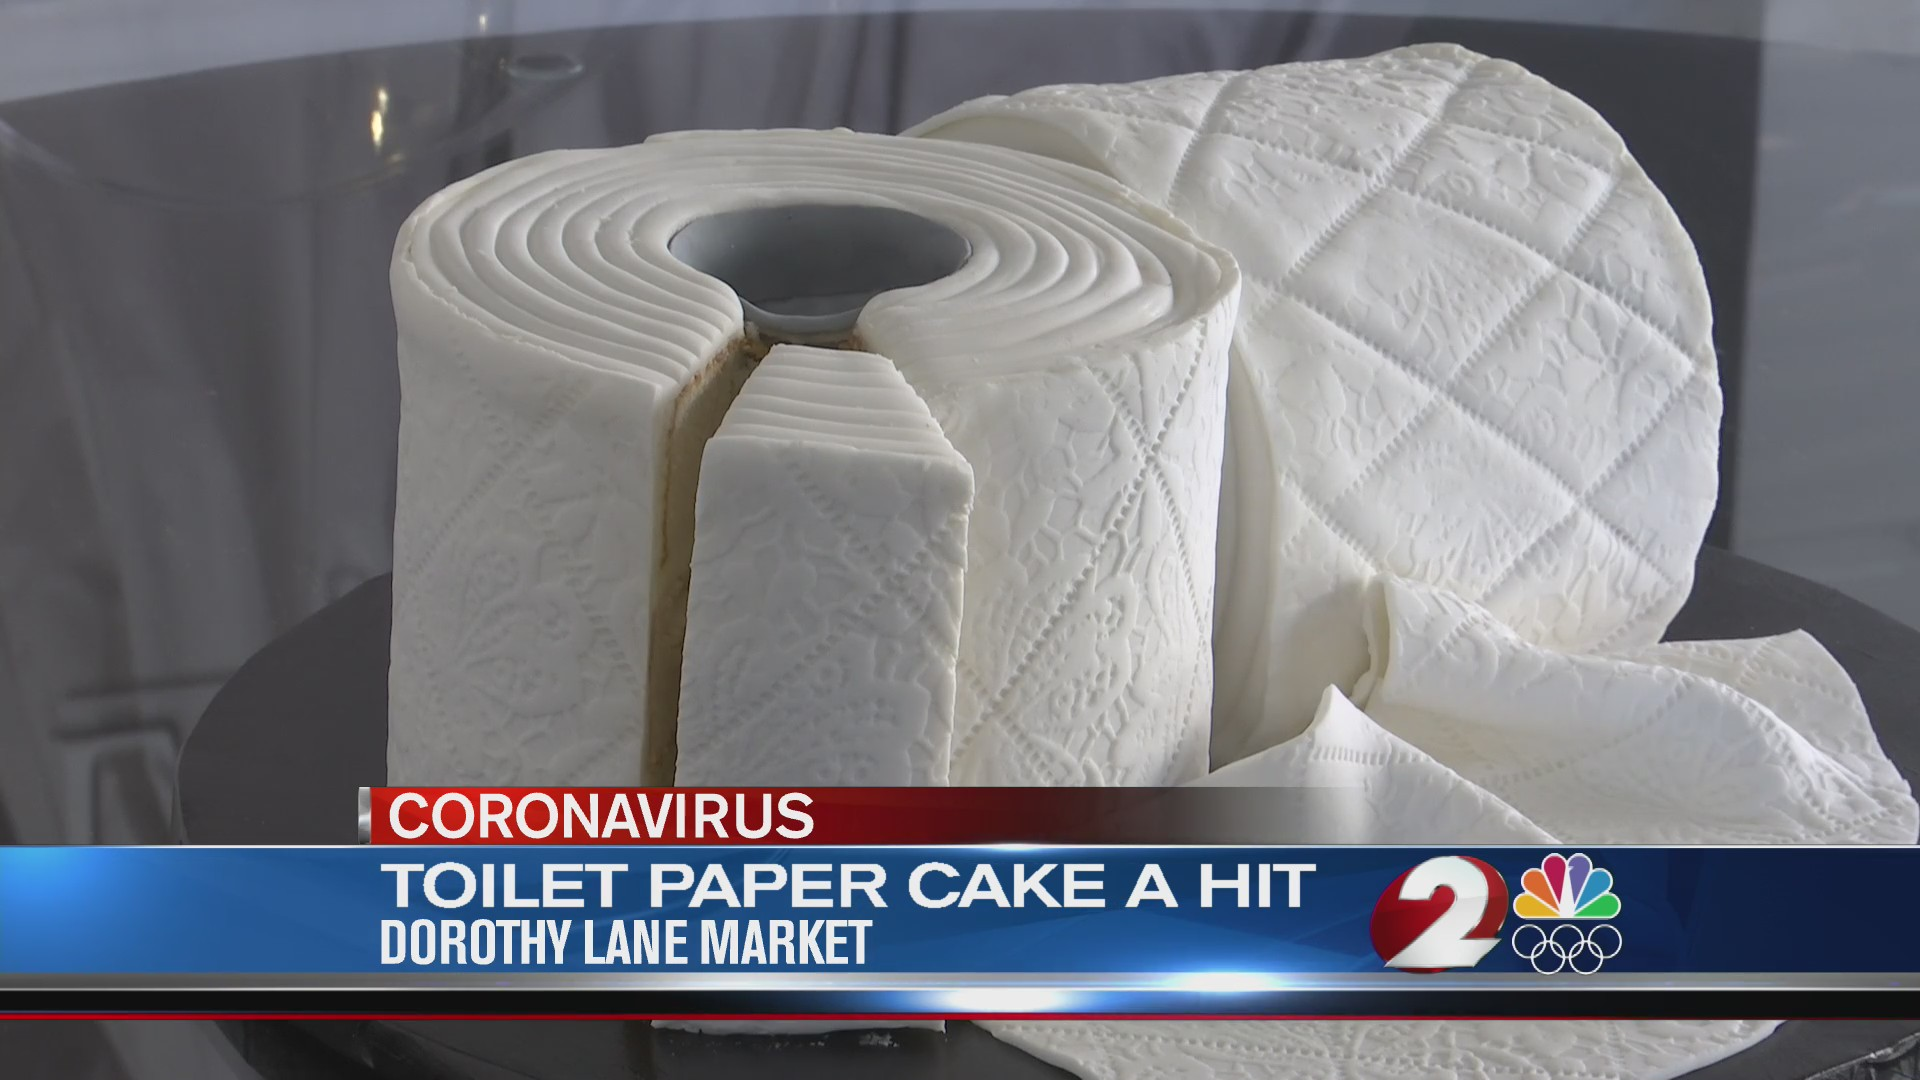 Toilet paper cake a hit at Dorothy Lane Market